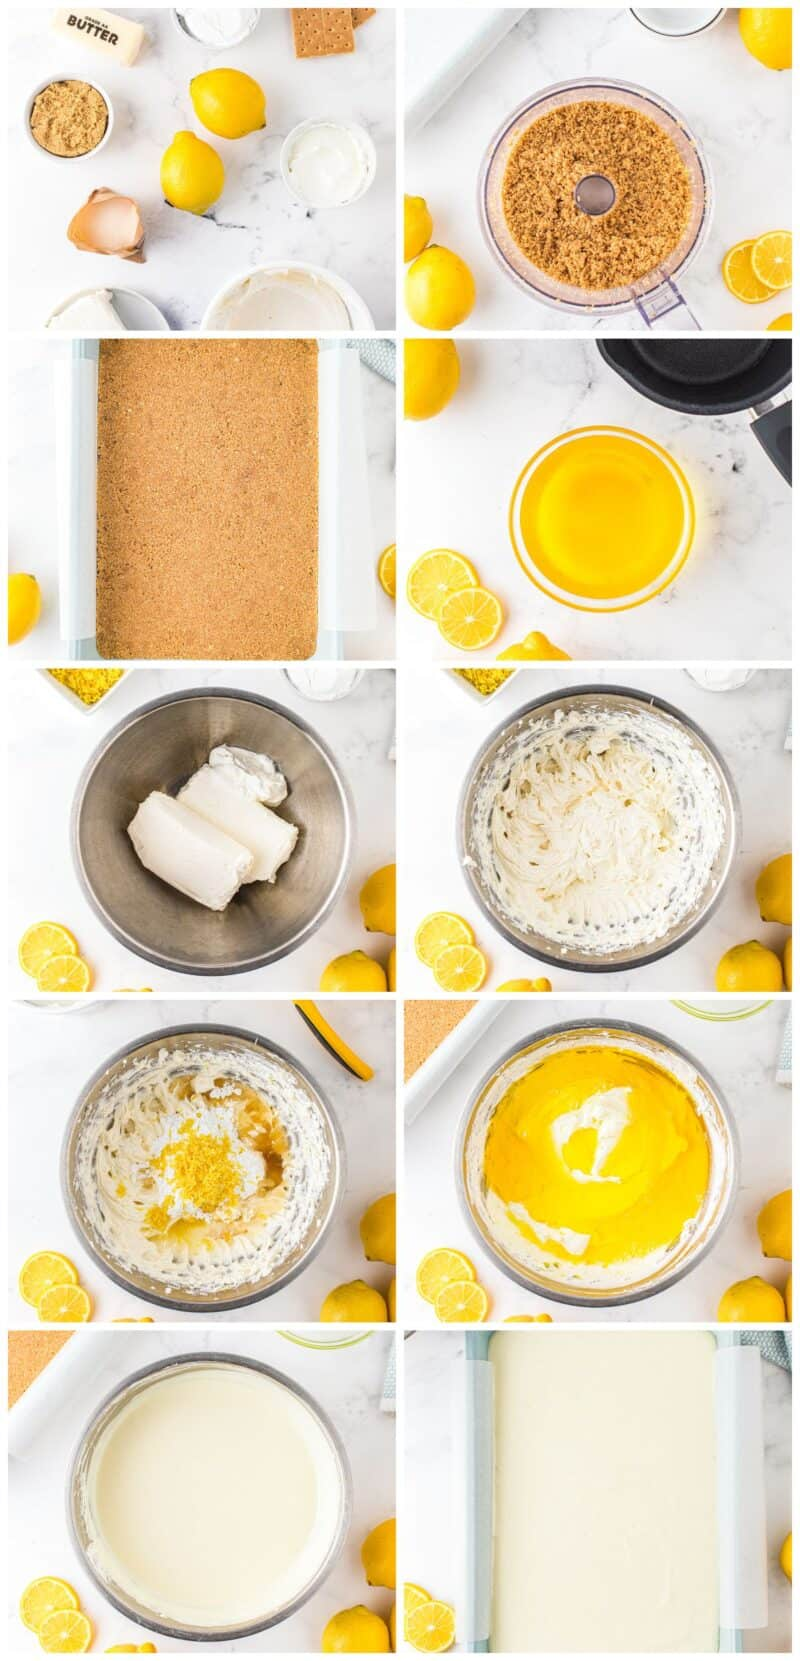 step by step photos for how to make no bake lemon cheesecake